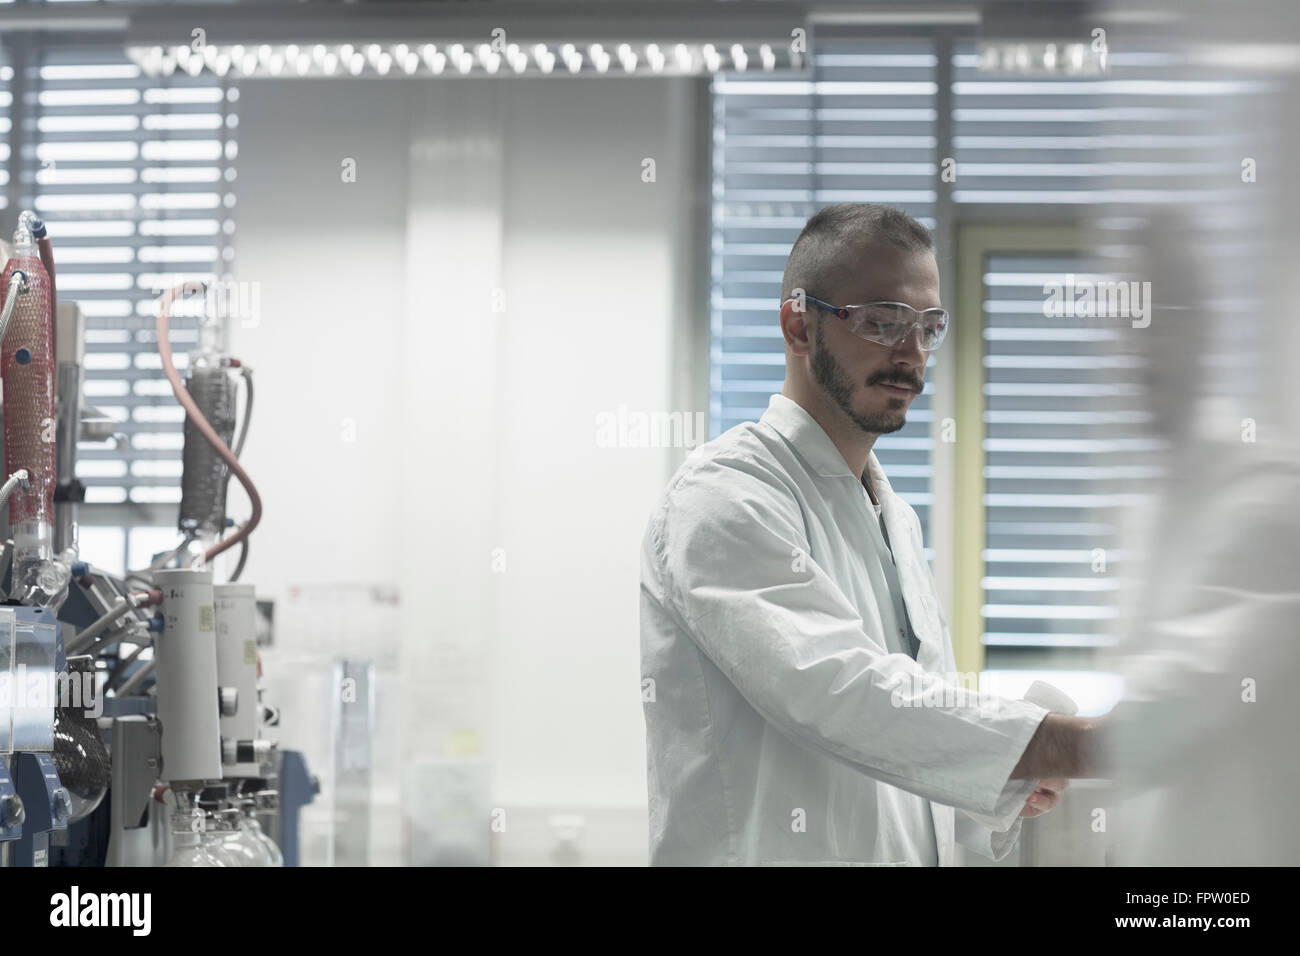 Young scientist working in a pharmacy lab, Freiburg Im Breisgau, Baden-Württemberg, Germany - Stock Image